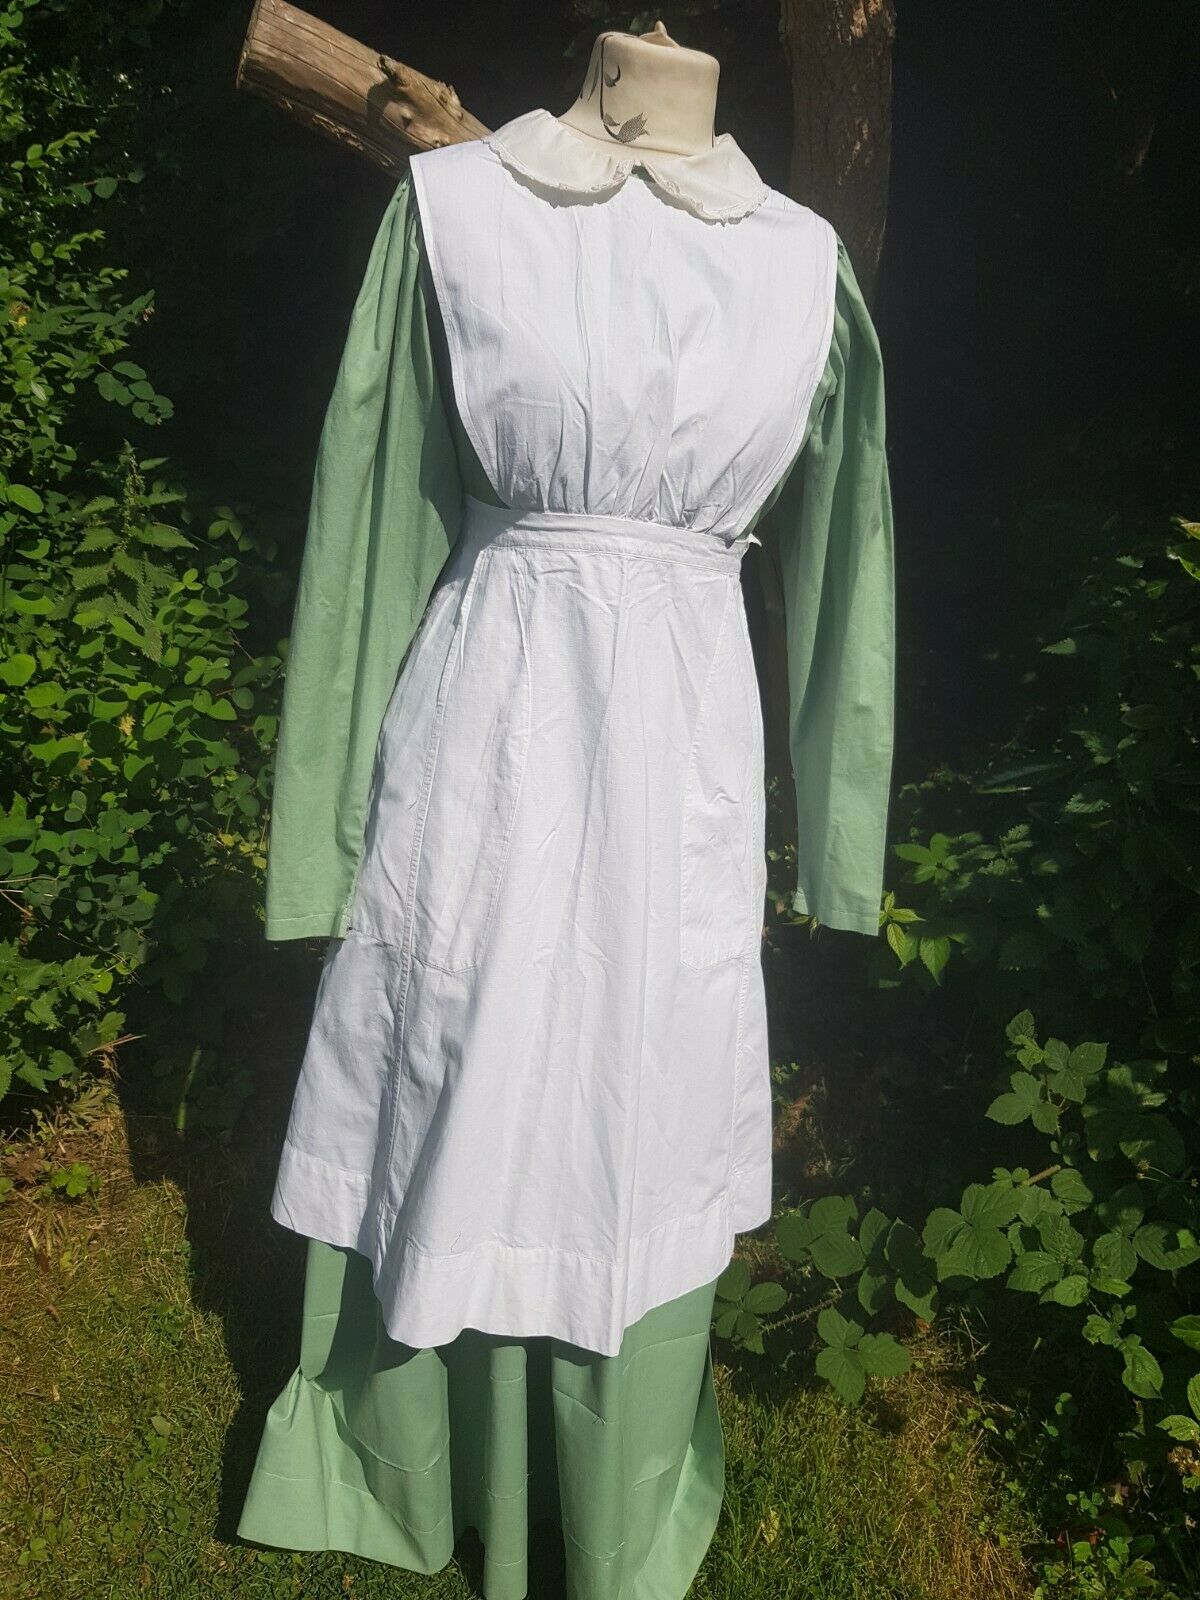 EARLY 1900's STYLE MAIDS OUTFIT DRESS & LINEN FULL PINNIE FOR THE STAGE/FILM